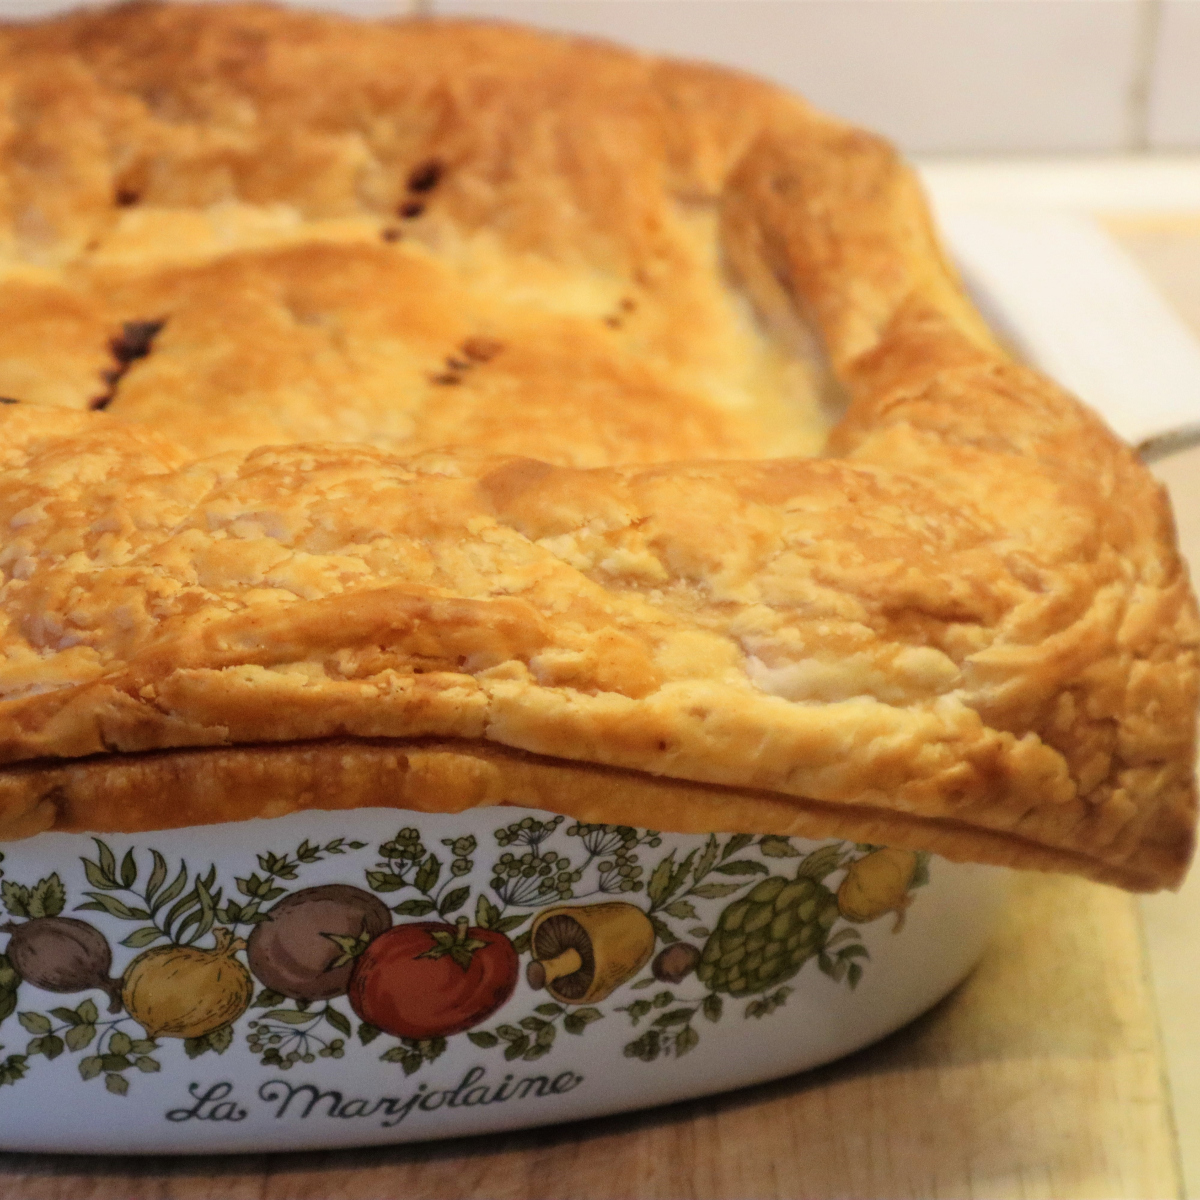 A layer of cooked puff pastry over a steak and kidney pie.